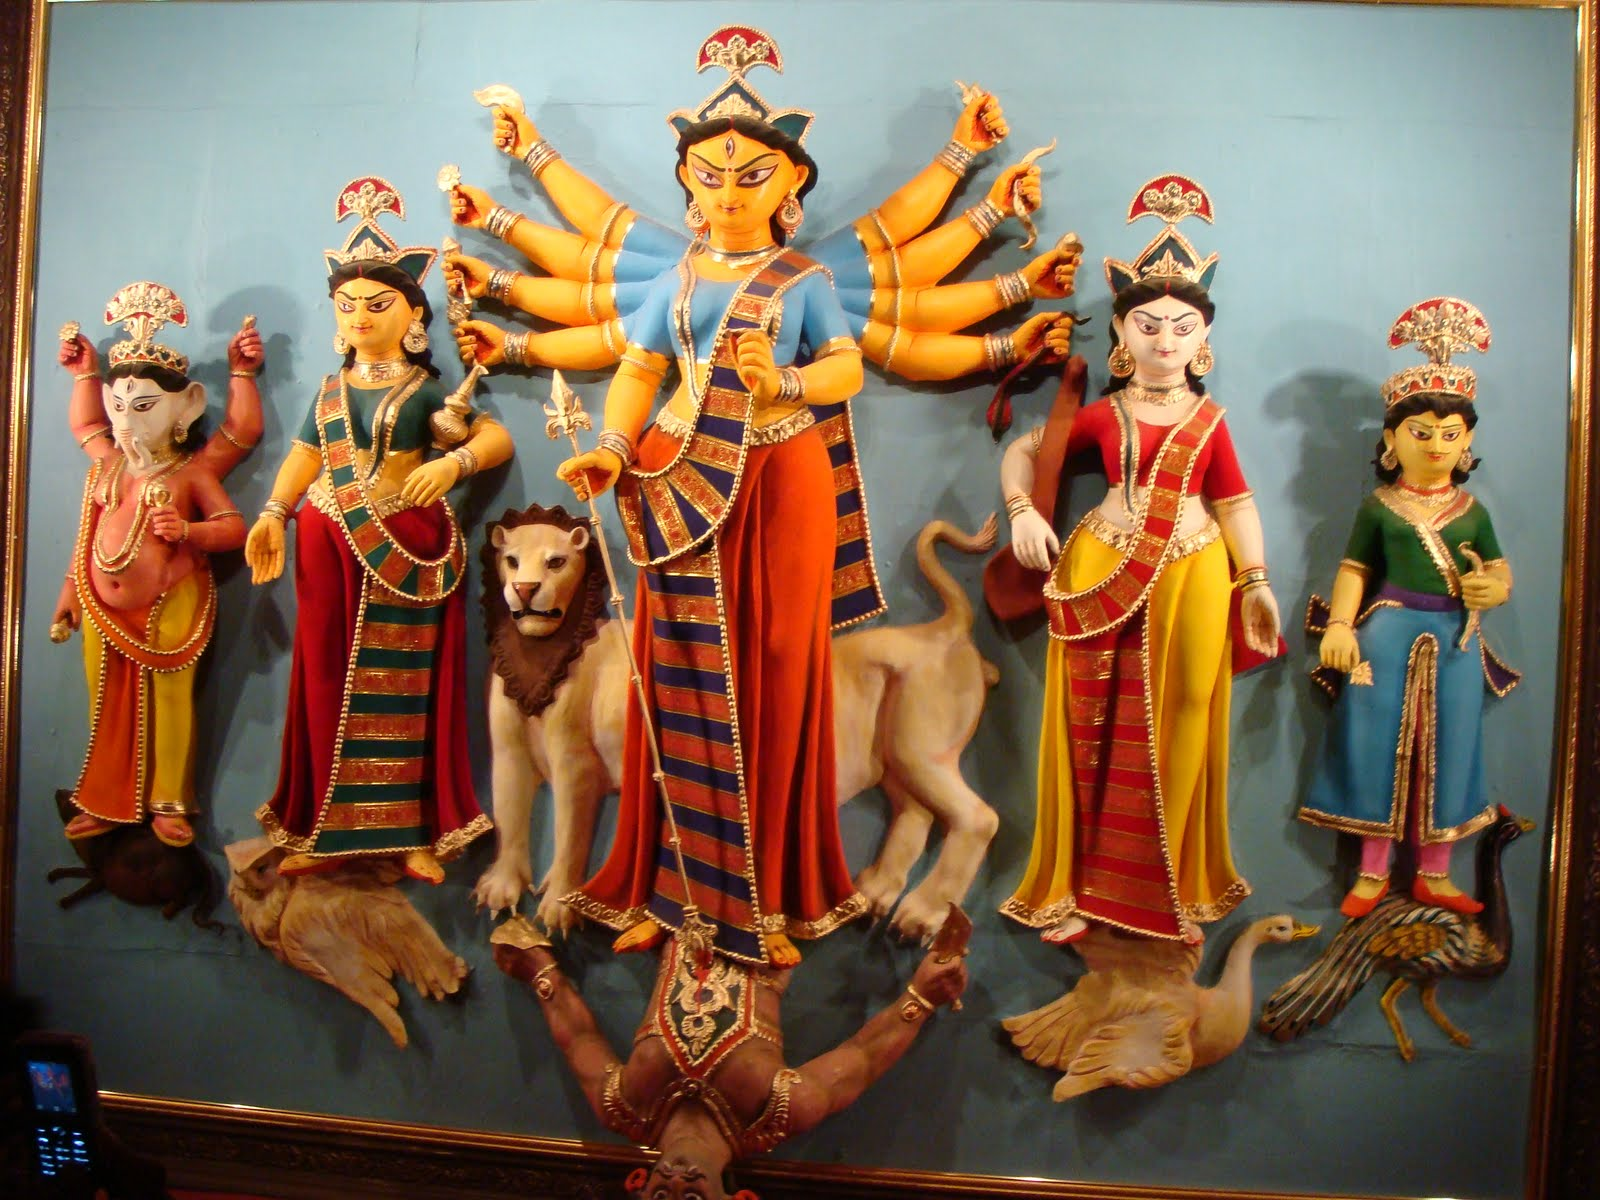 durga puja celebrations and calcutta maverick misfit telengabagan in north calcutta